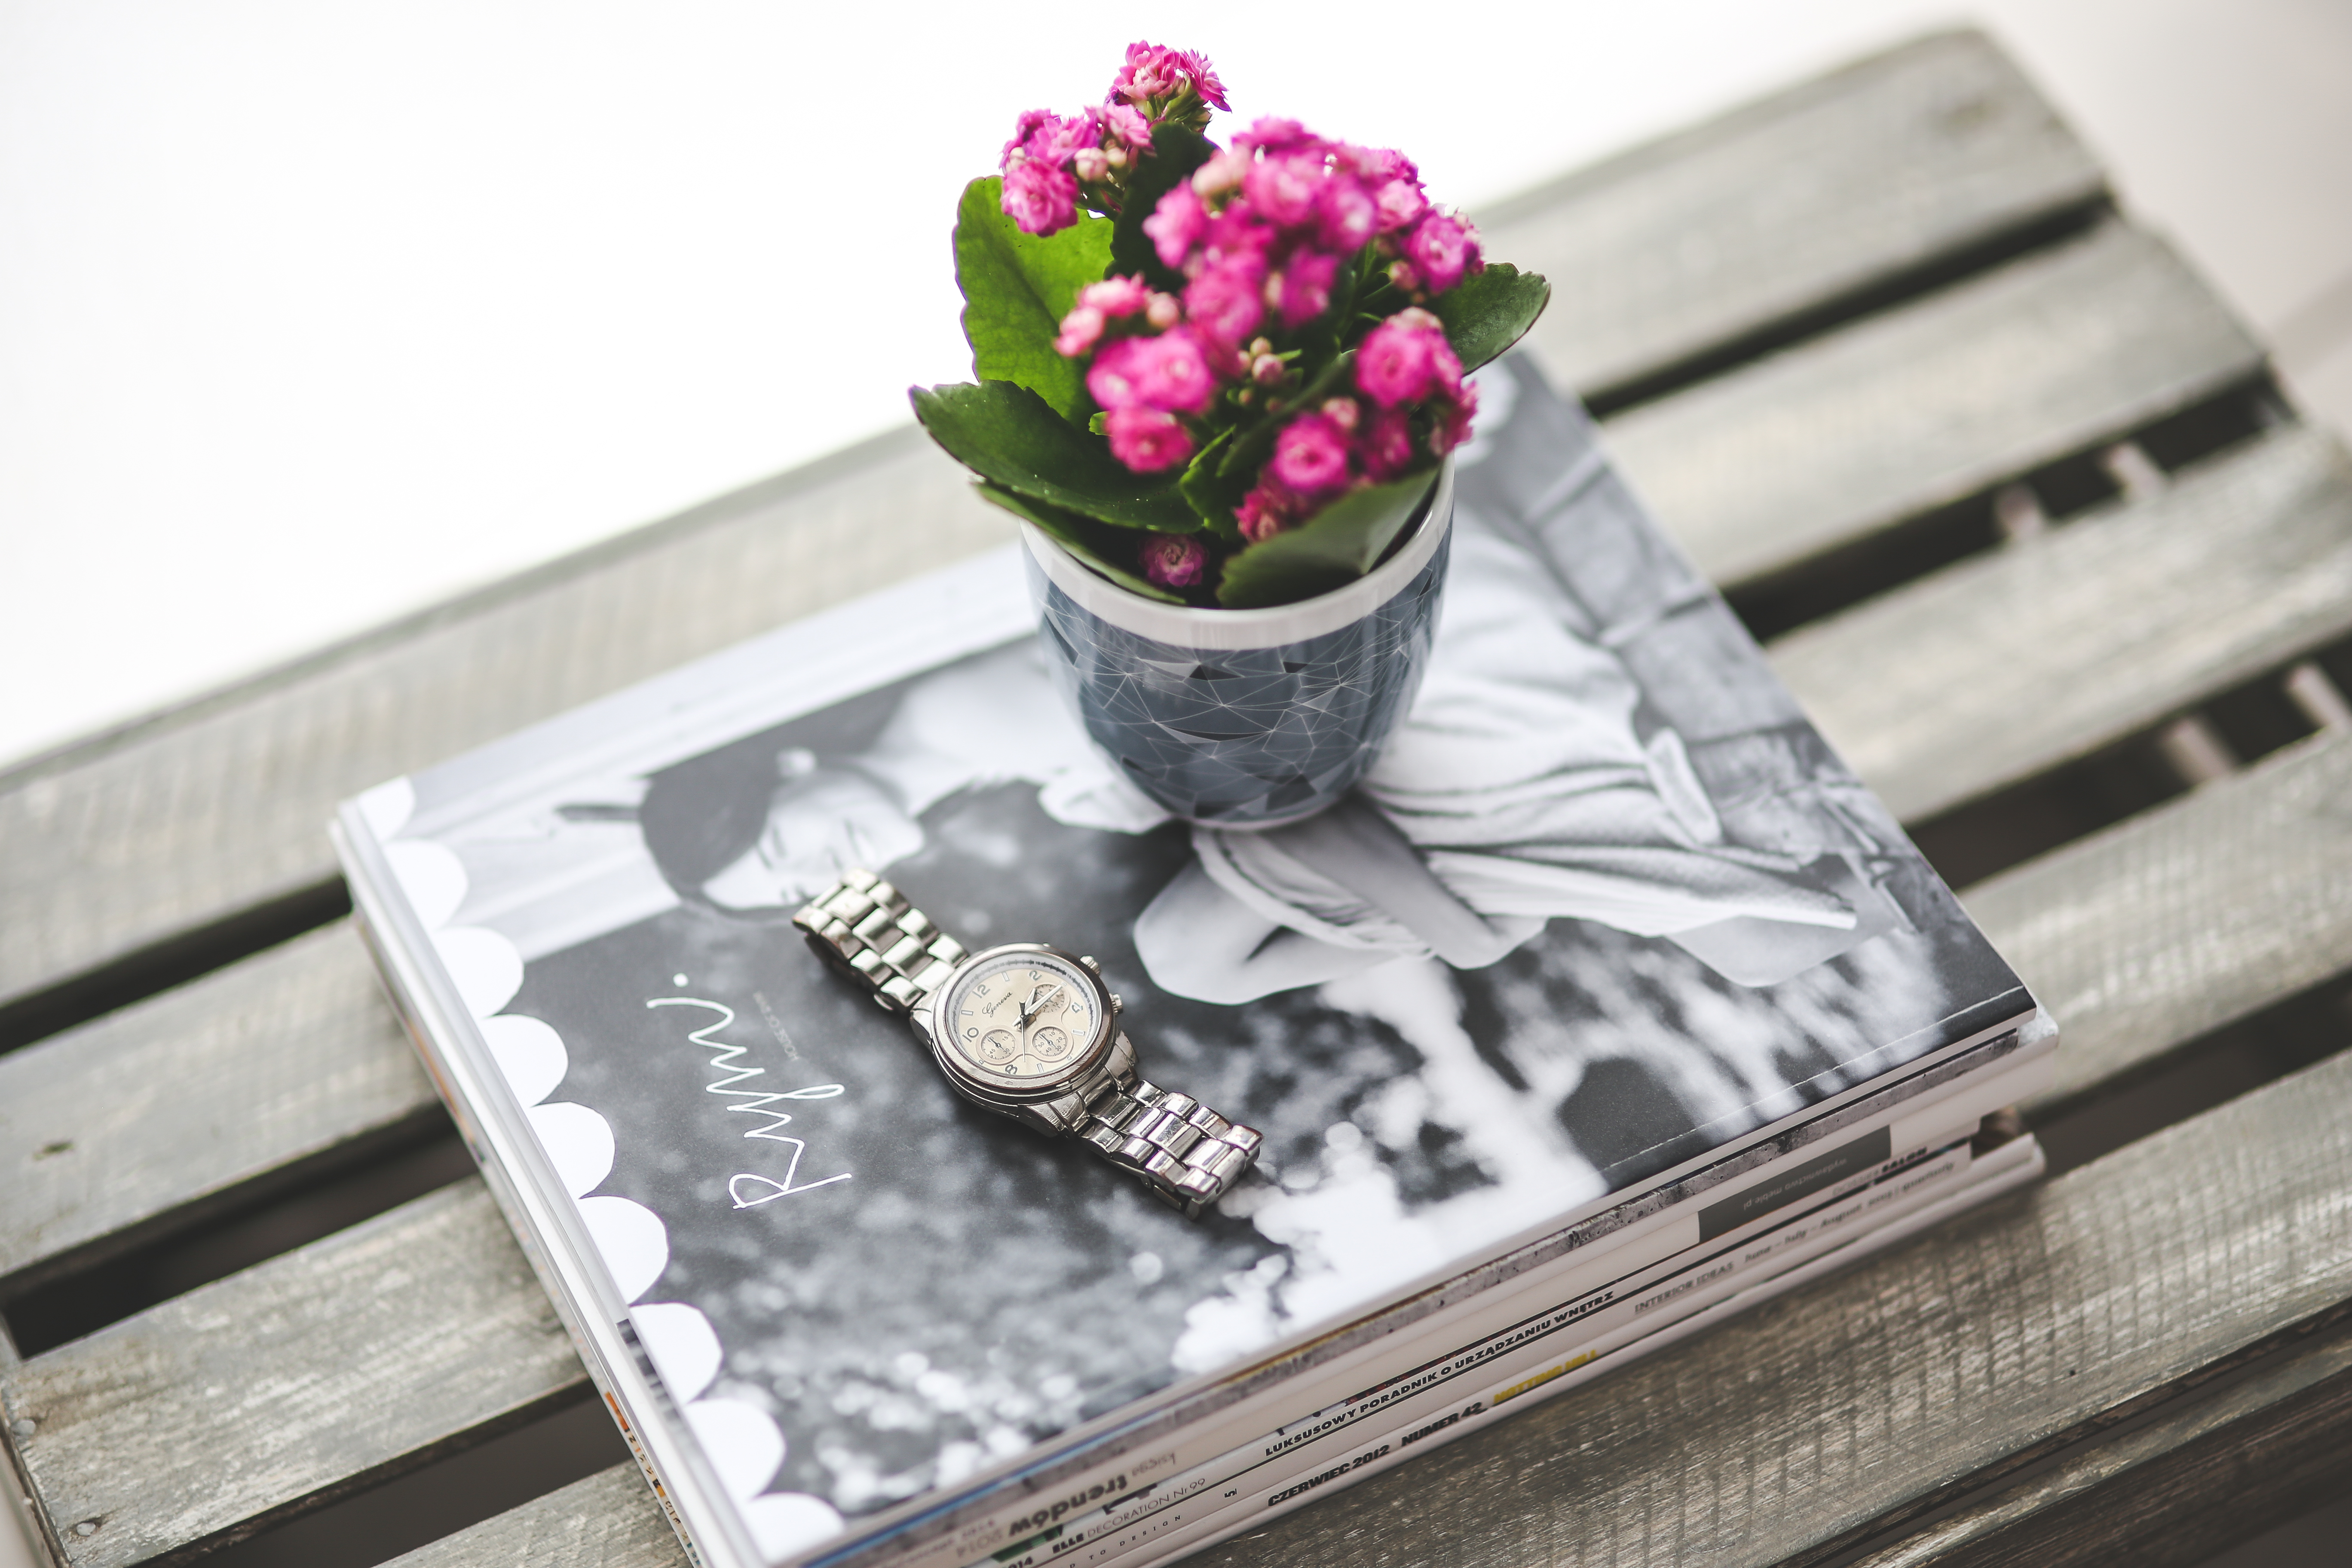 How to take are of a kalanchoe plant